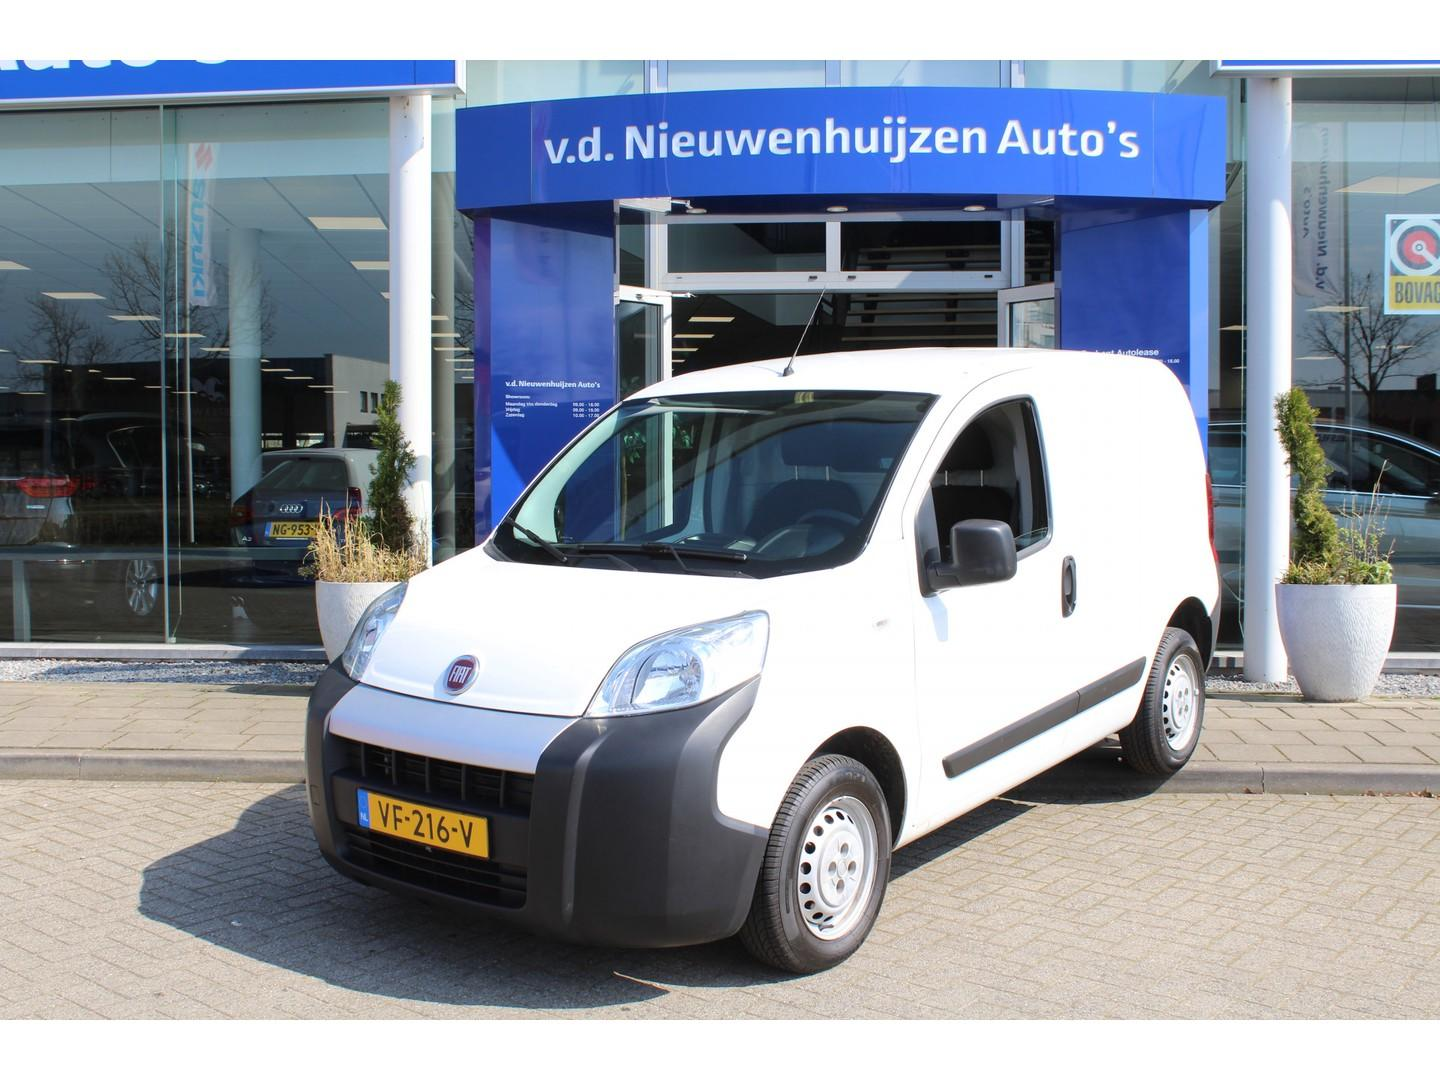 Fiat Fiorino 1.3 mj actual, airco lease vanaf €119 p/m meer info 0492-588980